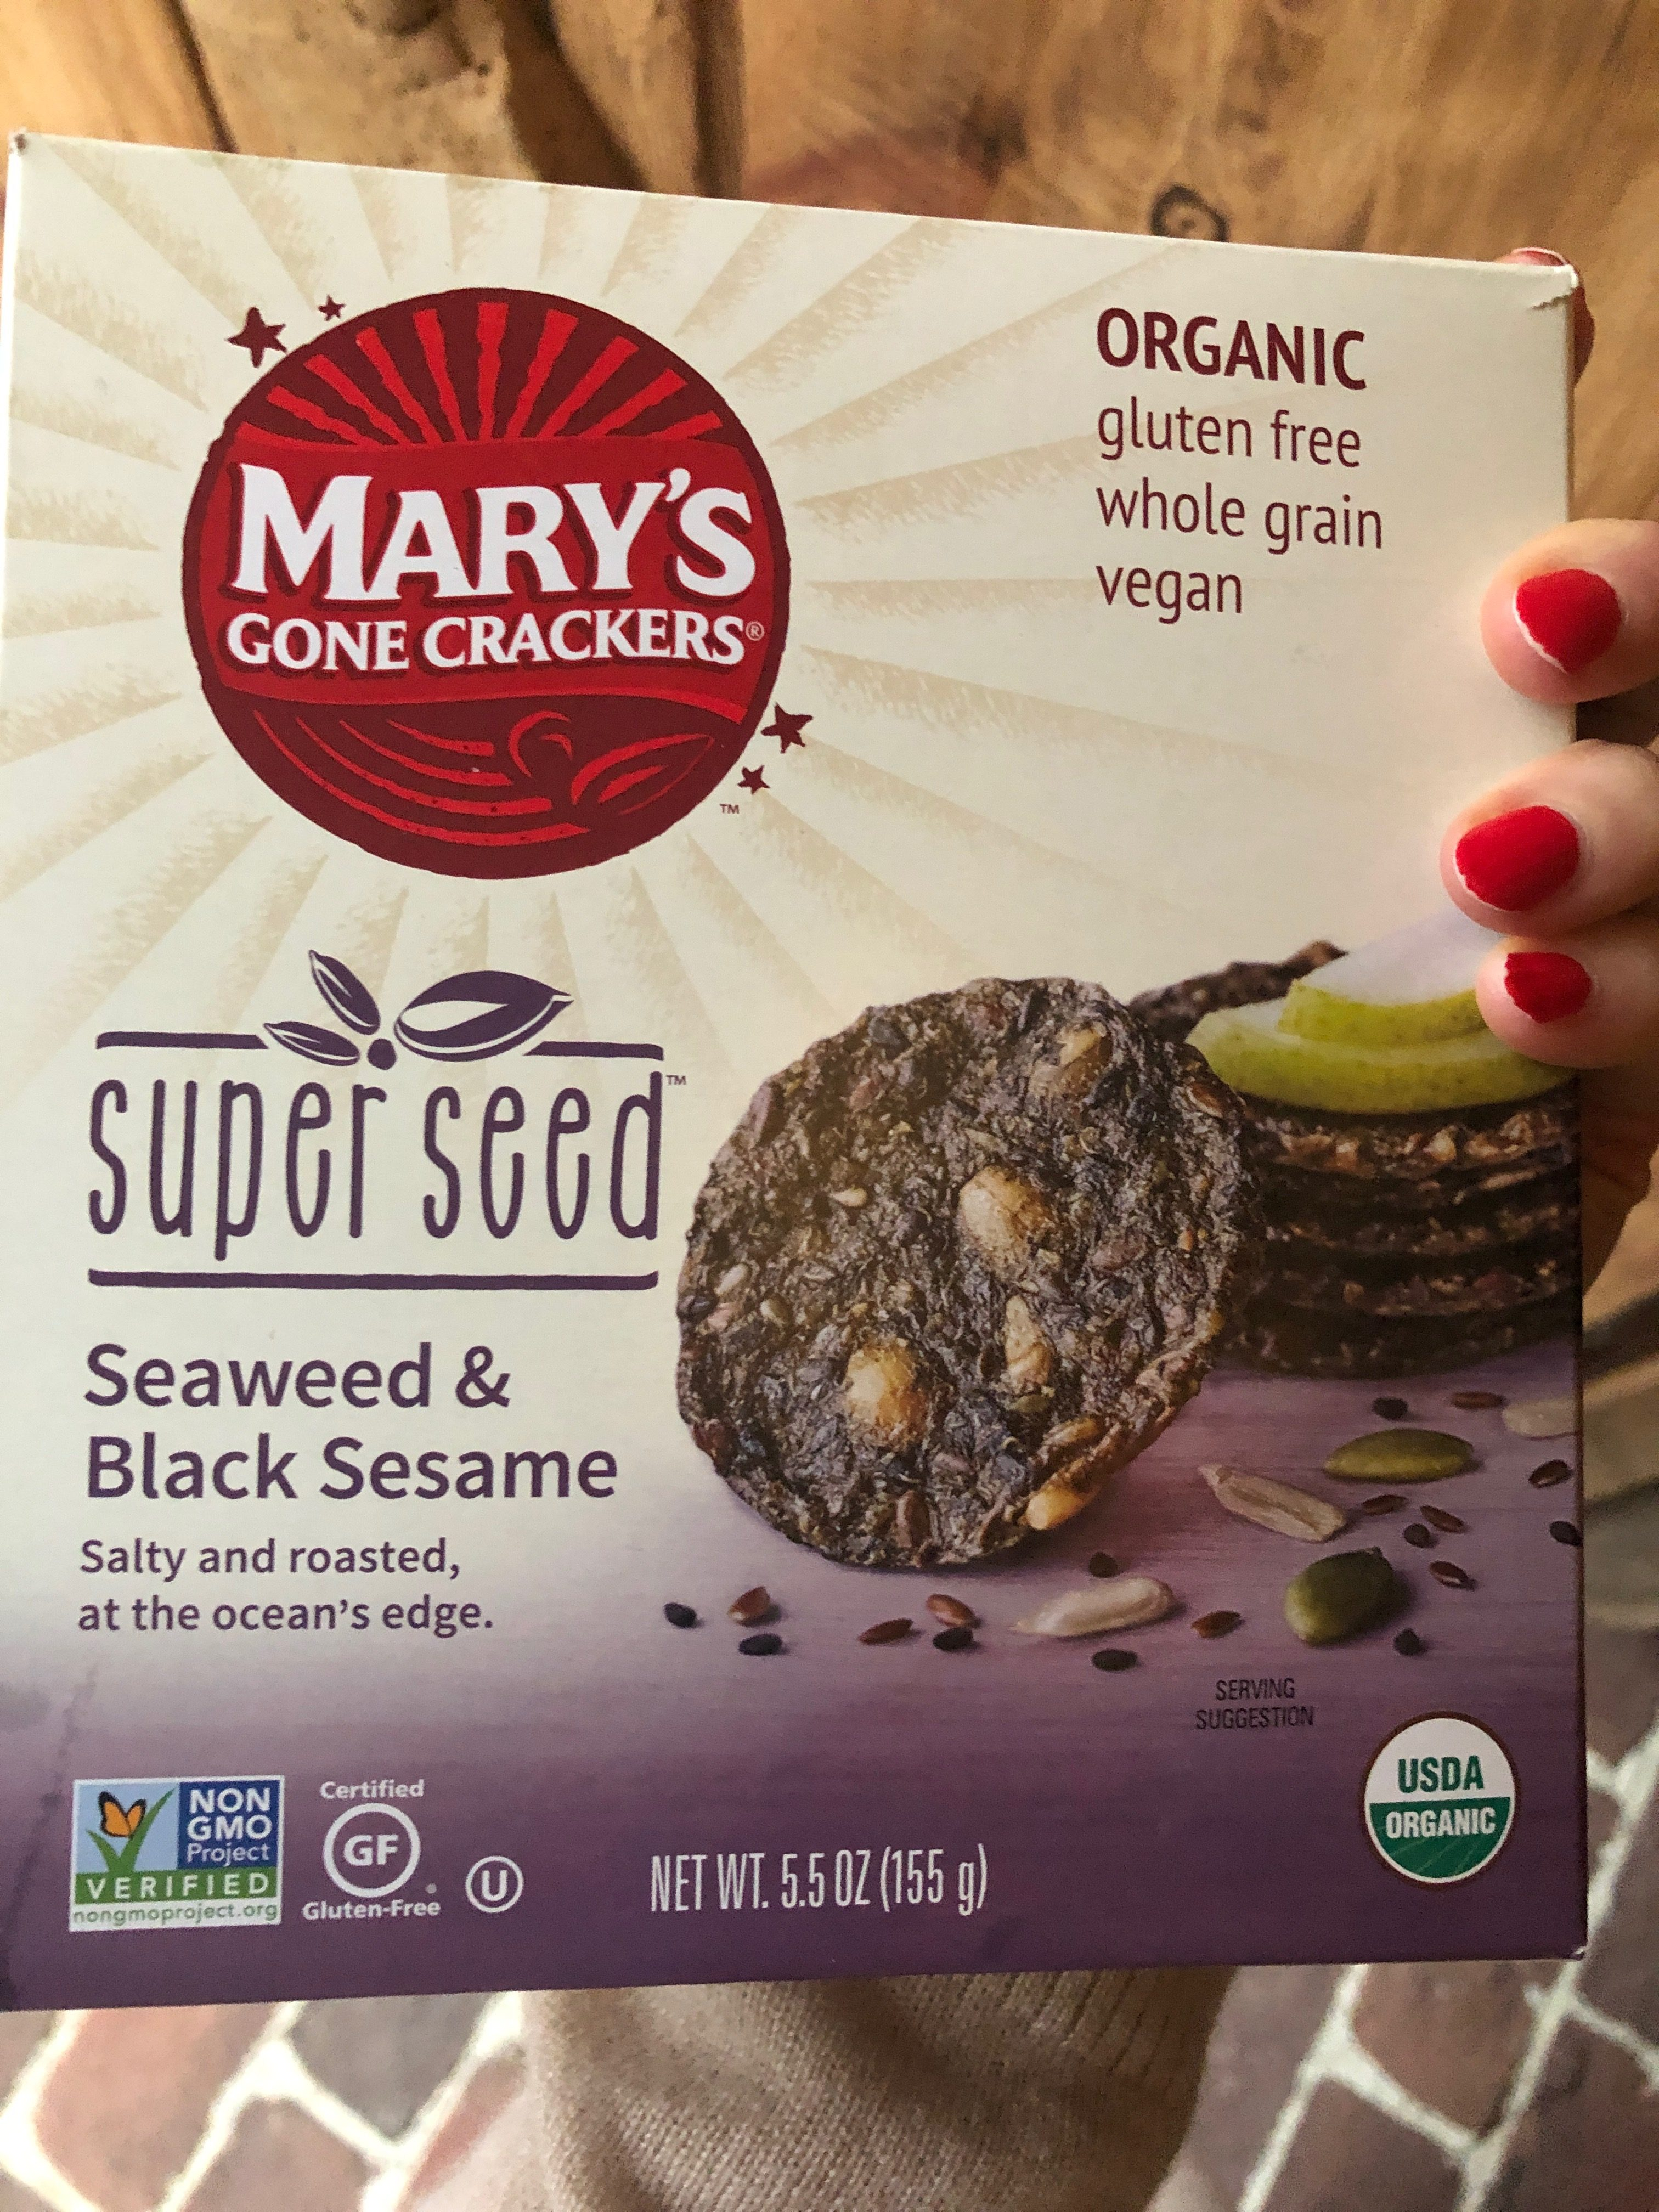 Mary's Gone Crackers seaweed and black sesame crackers gluten free